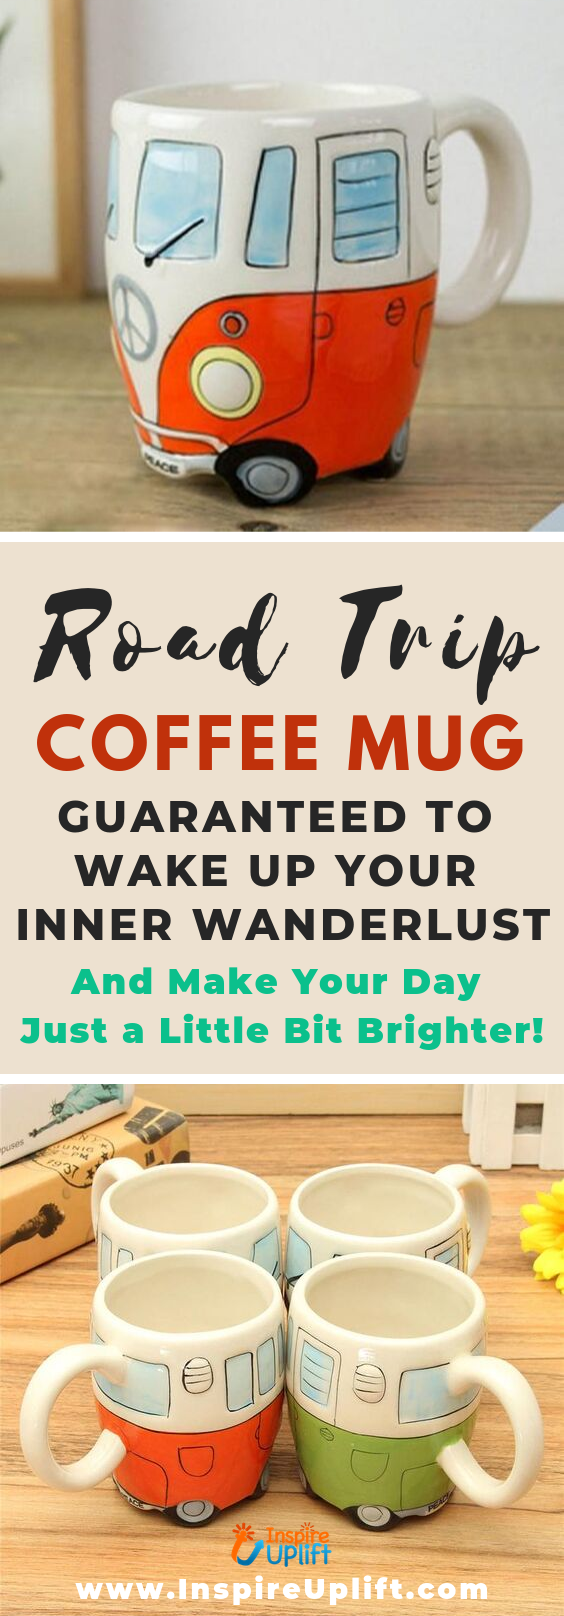 Road Trip Coffee Mug 😍 InspireUplift.com